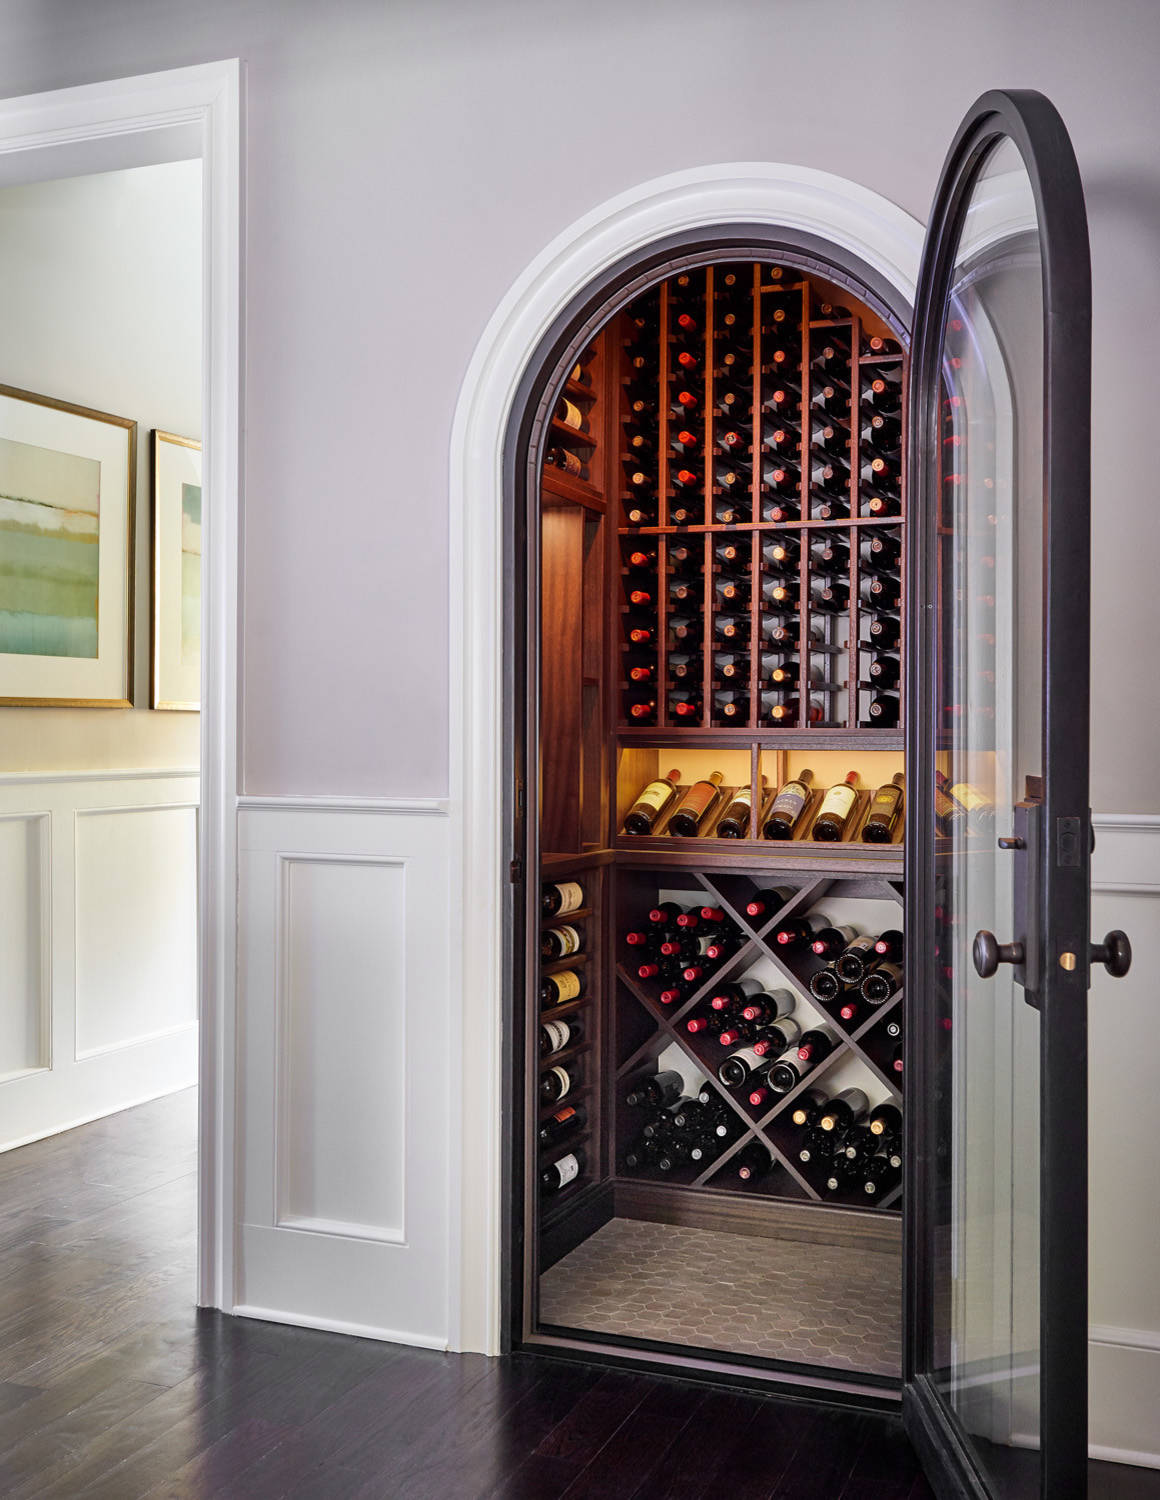 Mini Wine Cellar Ideas 75 beautiful small wine cellar pictures & ideas - june, 2020